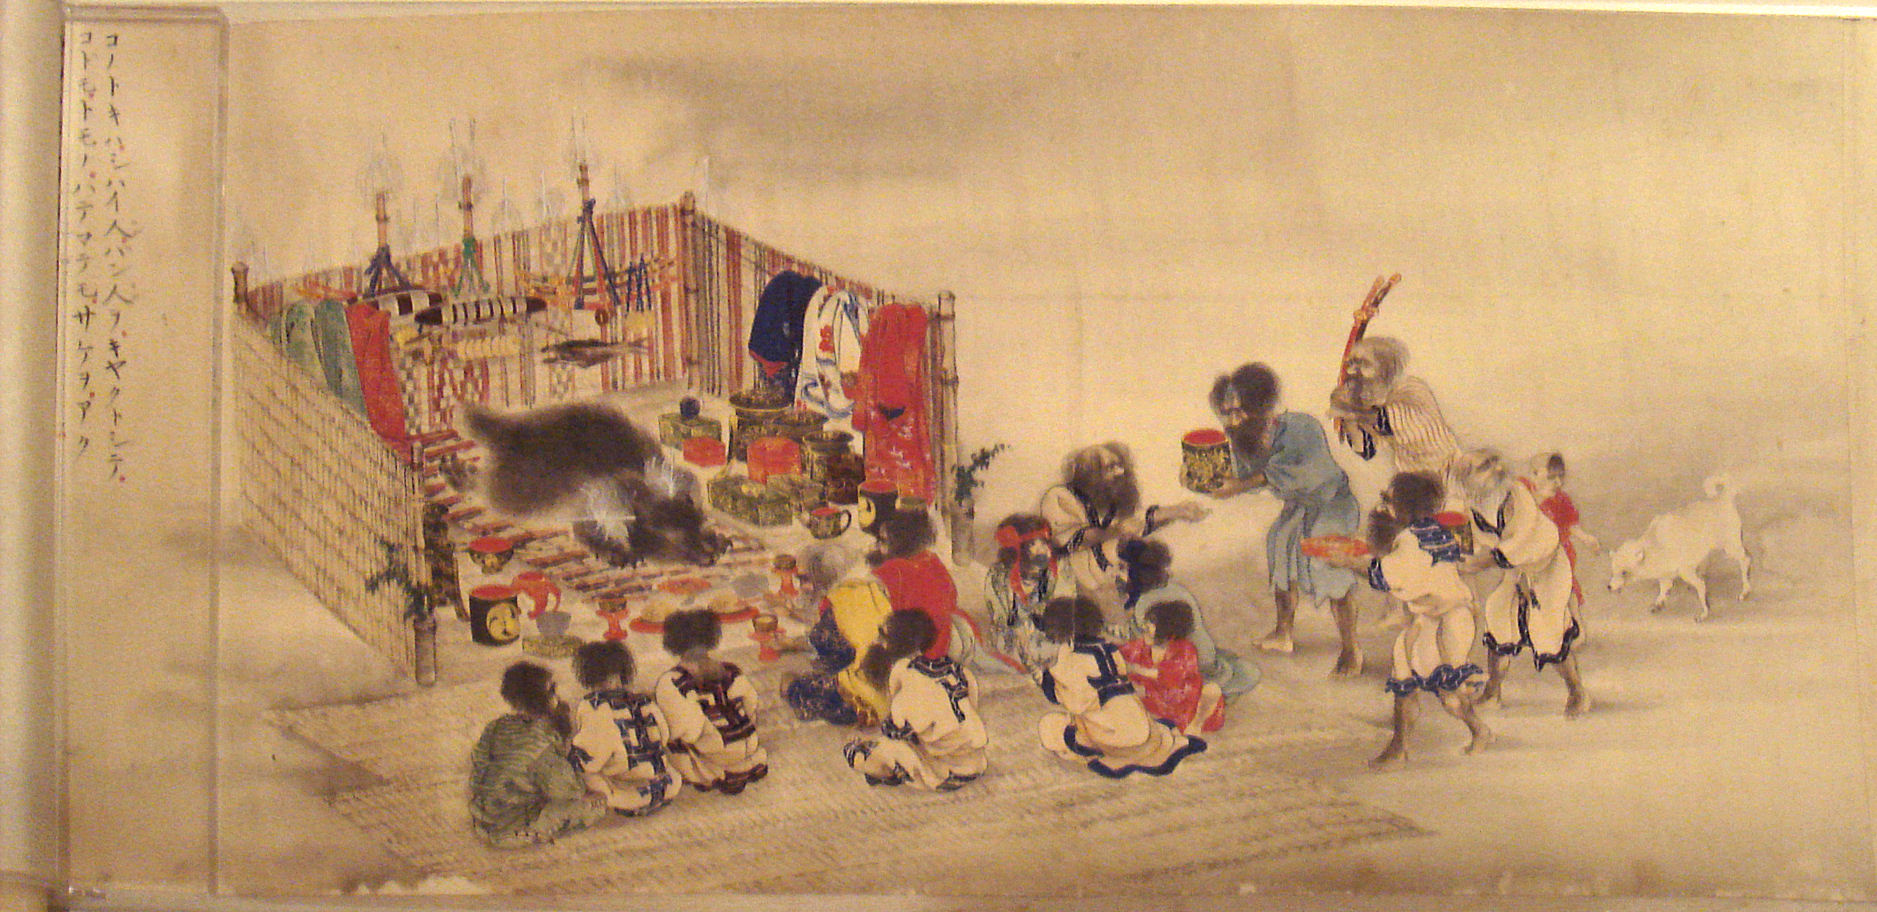 The Ainu Iomante ceremony bear sending. Japanese scroll painting circa 1870